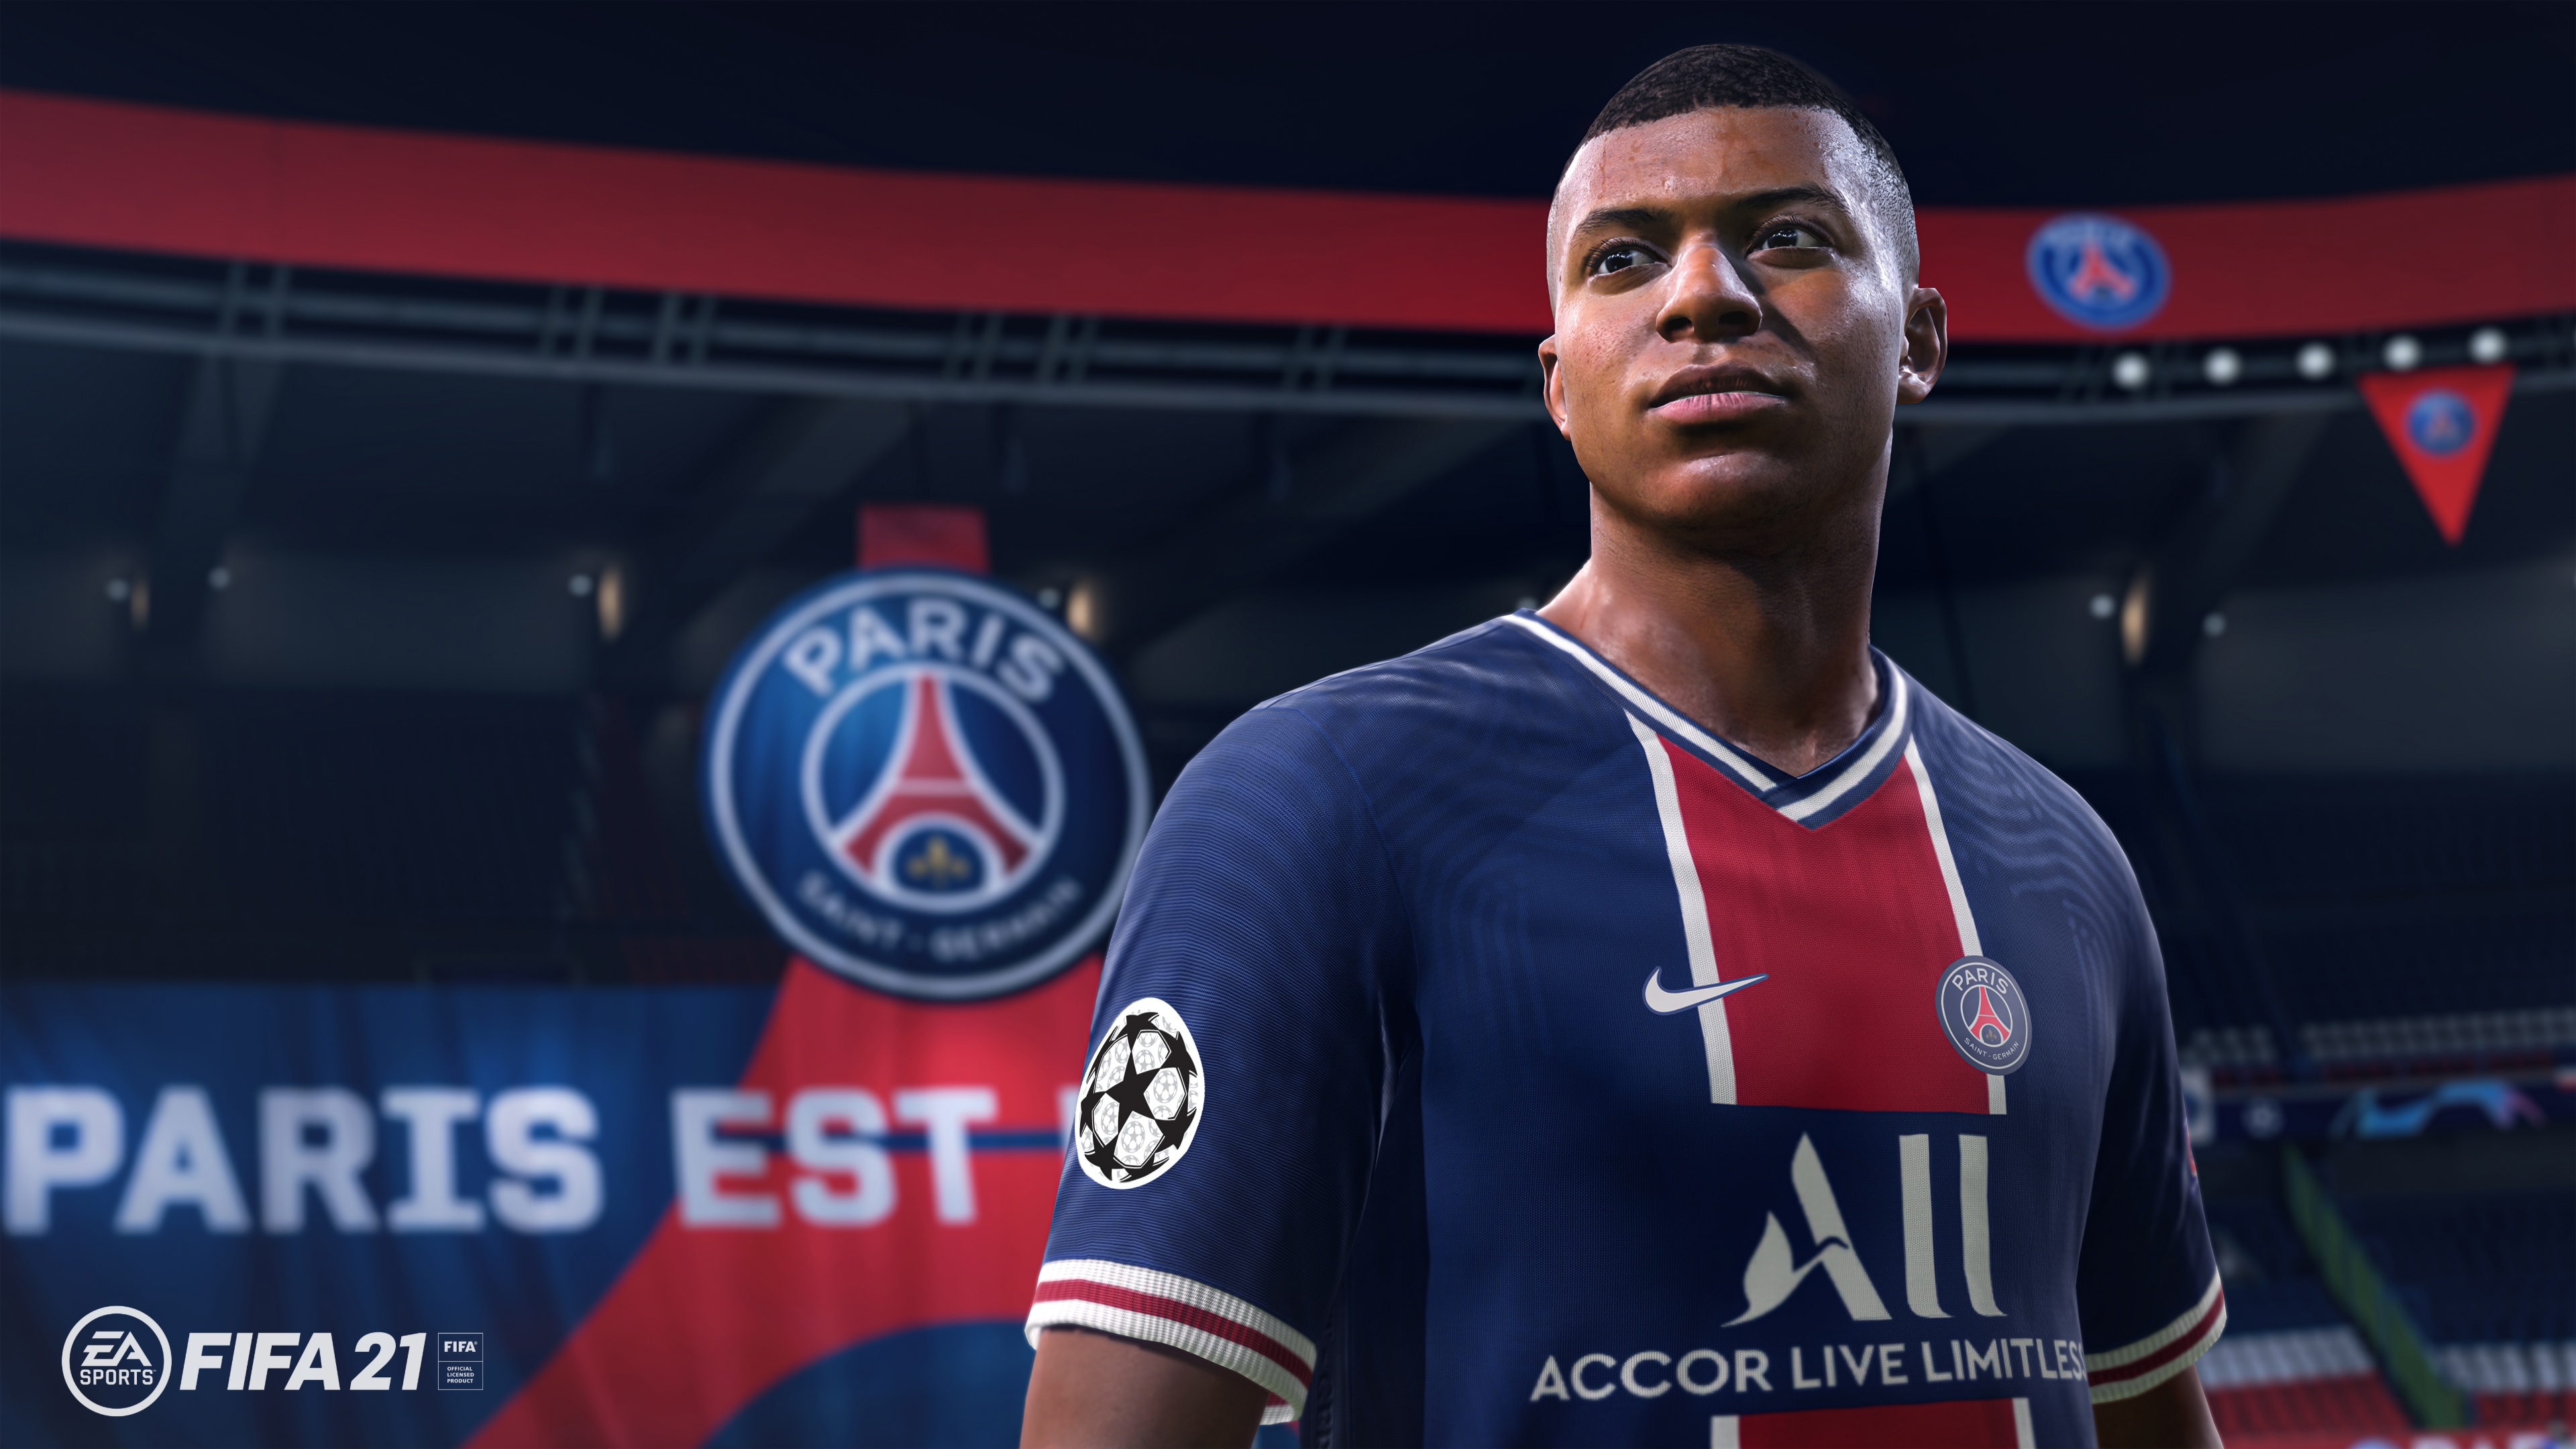 When are the FIFA 21 ratings revealed and who will be the best playerson thenew game?